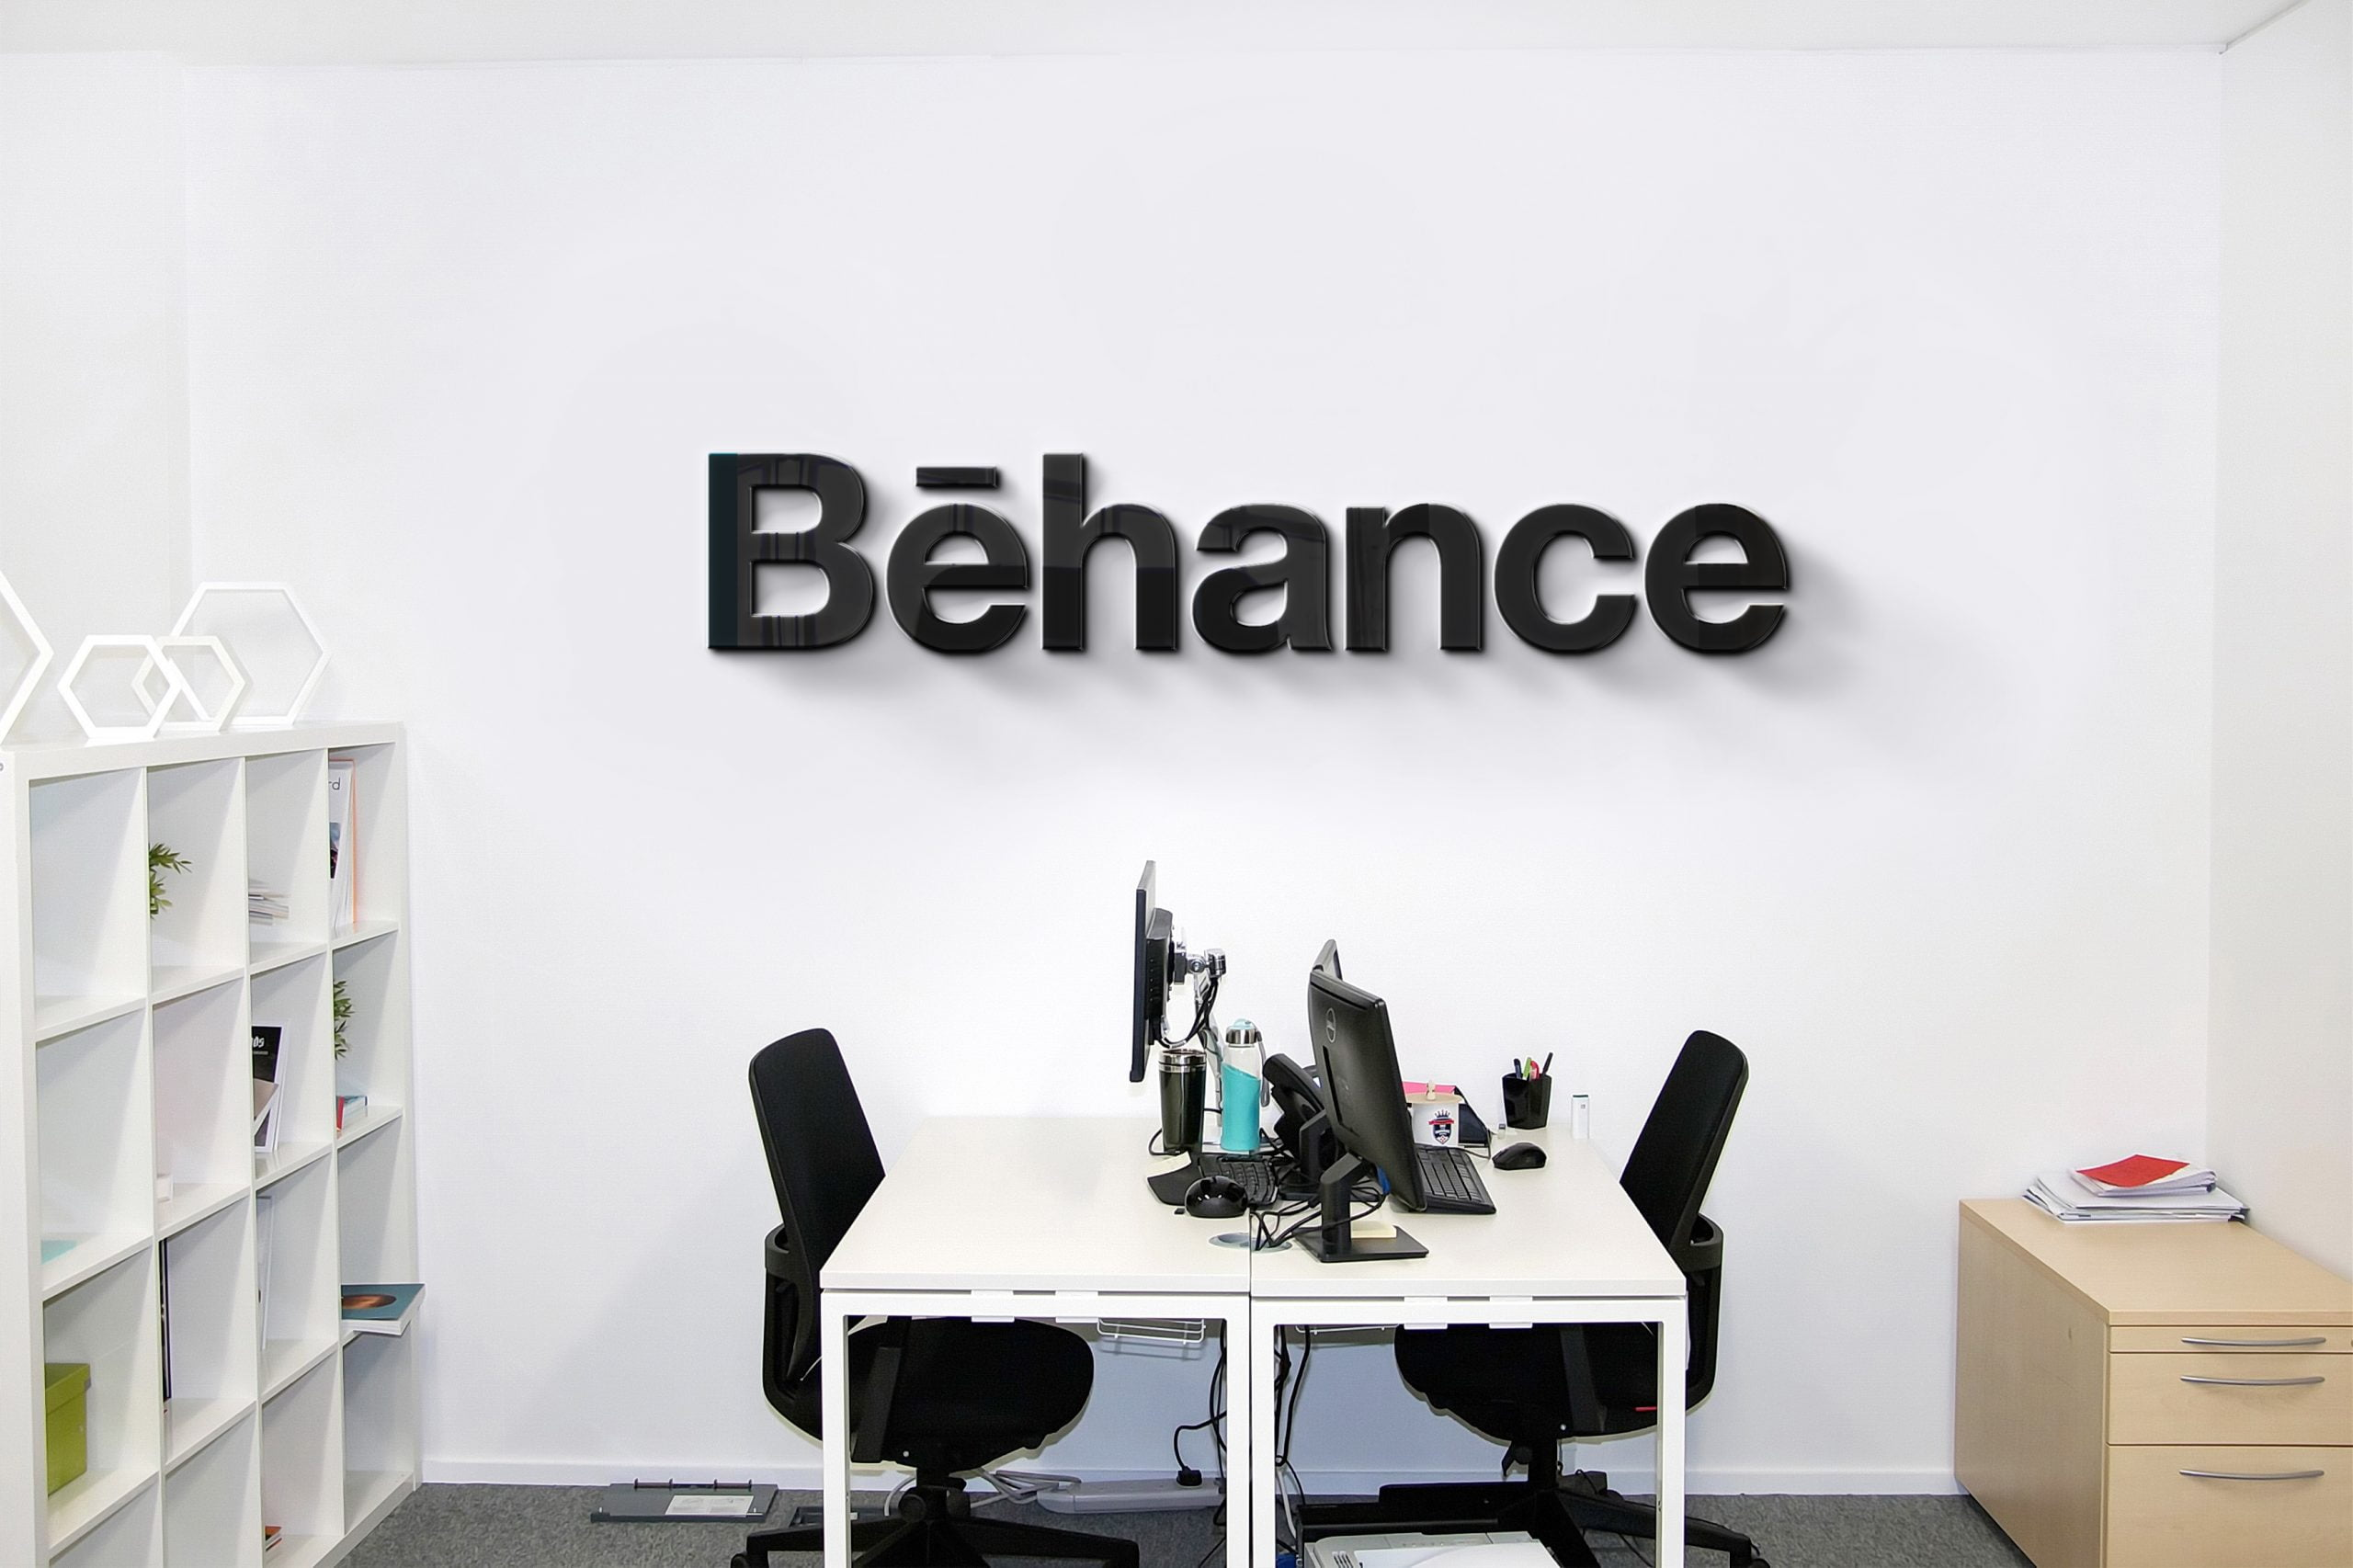 Behance Company Office Wall Logo Mock-up by GraphicsFamily